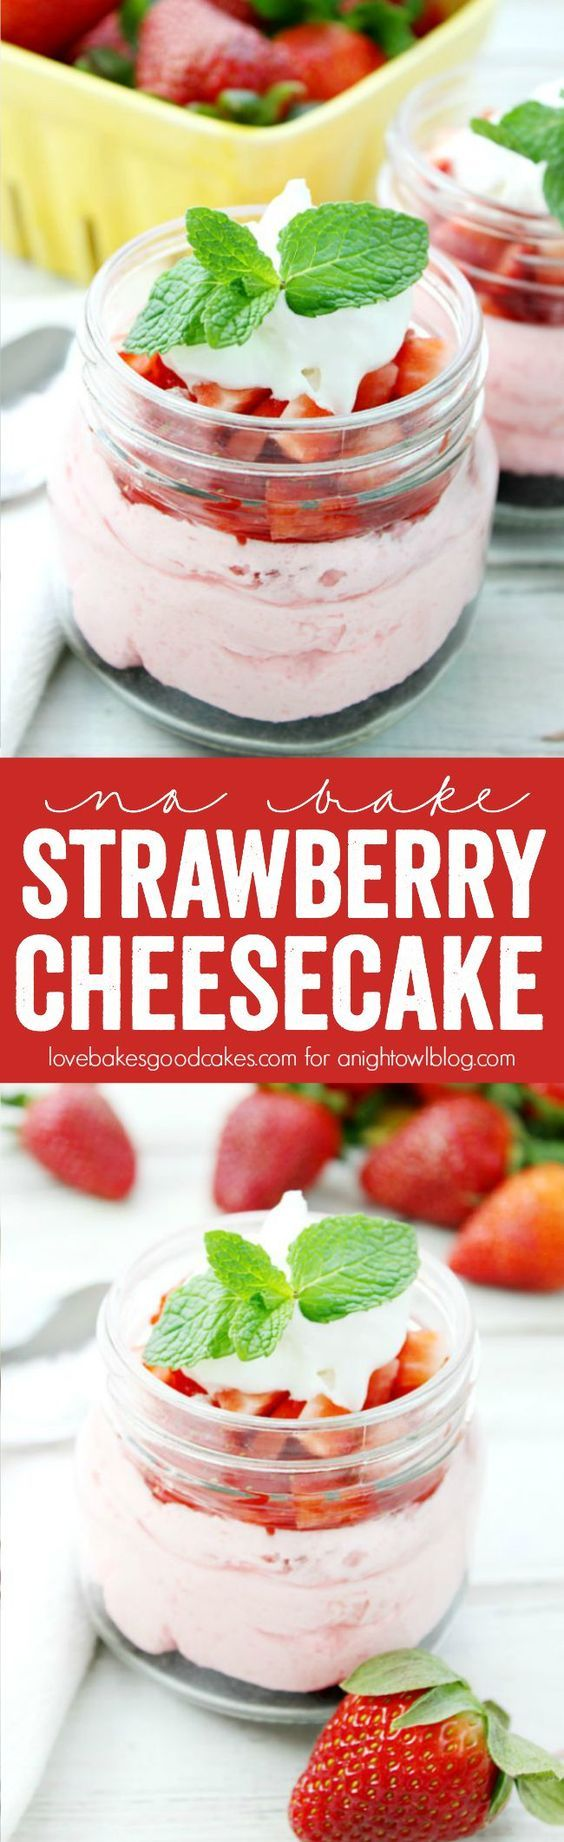 This No Bake Strawberry Cheesecake recipe is perfect for dessert! Easy to make and delicious!